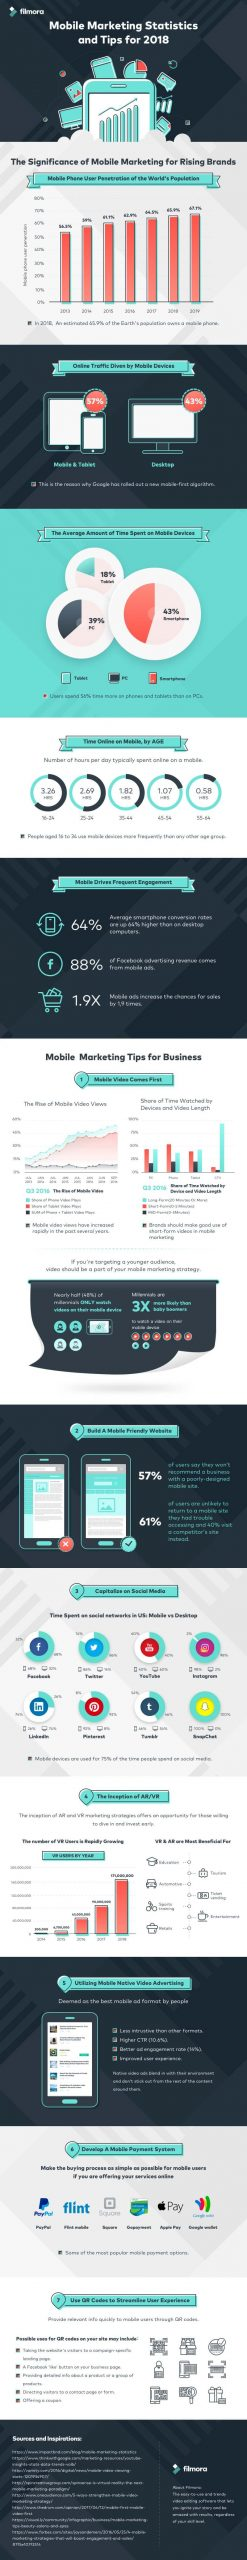 Mobile Marketing Tips Infographic compressed